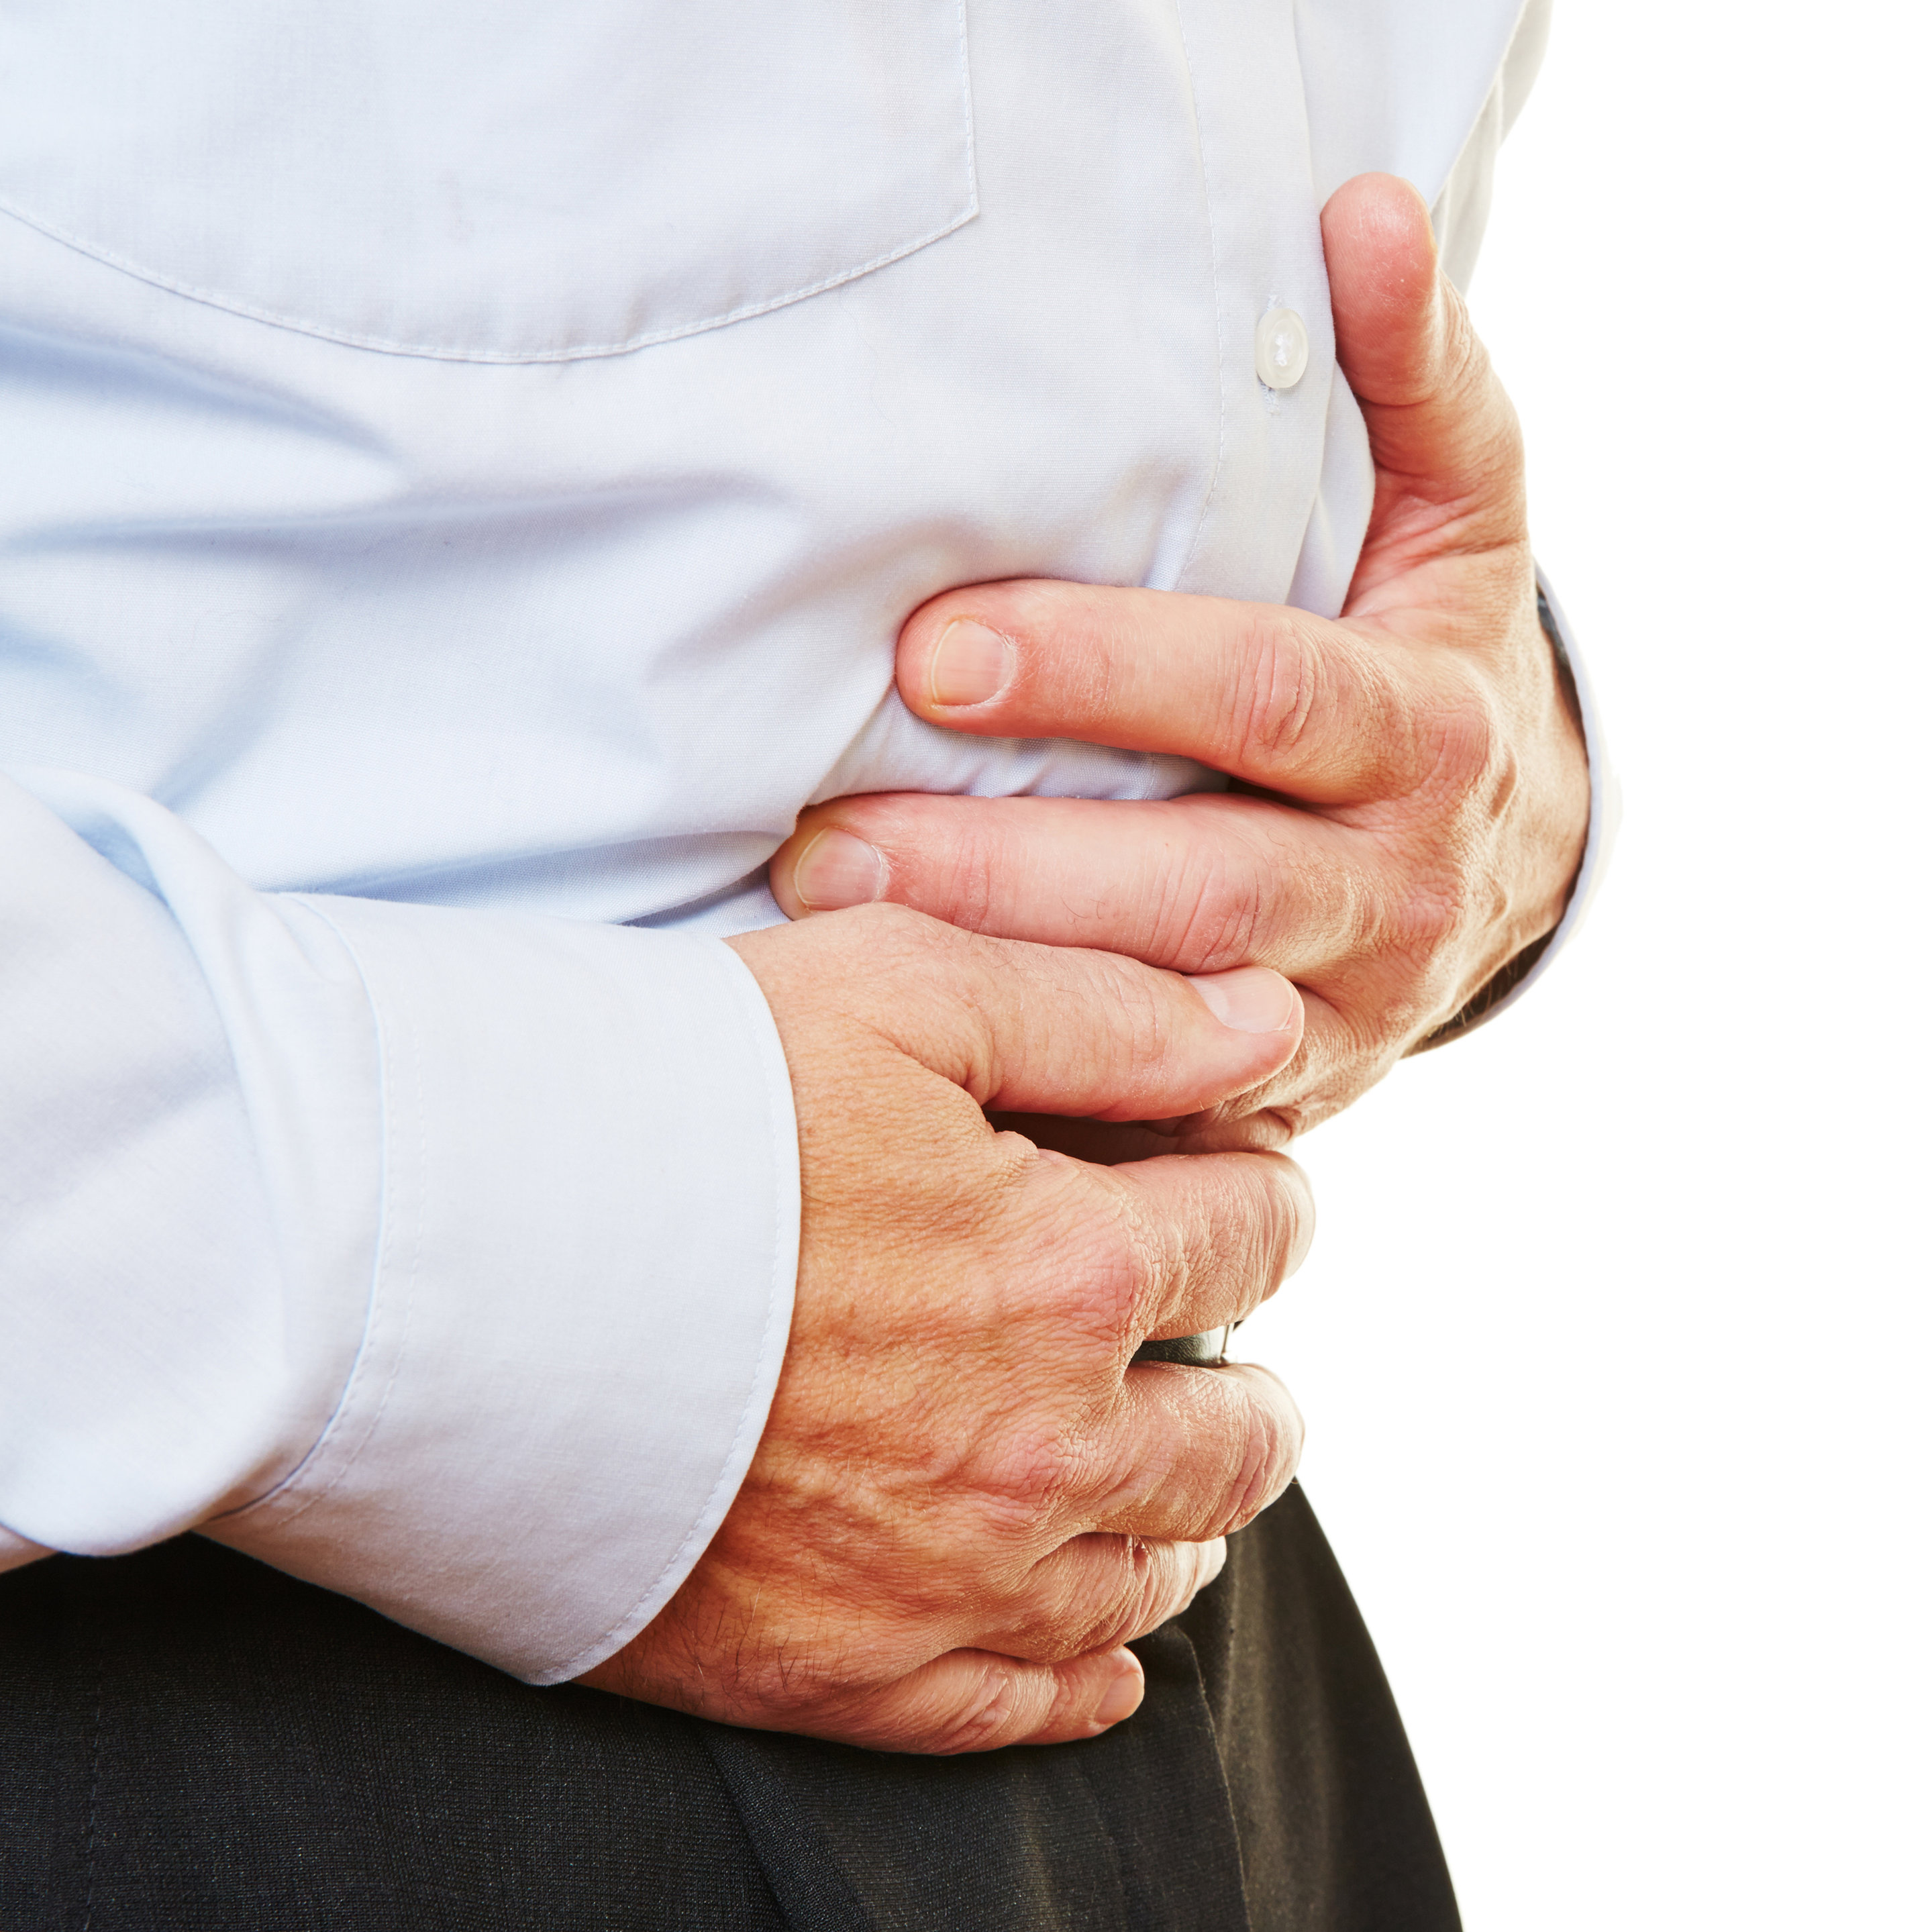 Bacterium displaces all other bacteria in the gastrointestinal tract,  leaving only Helicobacter bacteria in the stomach. Credit: Medical  University of ...